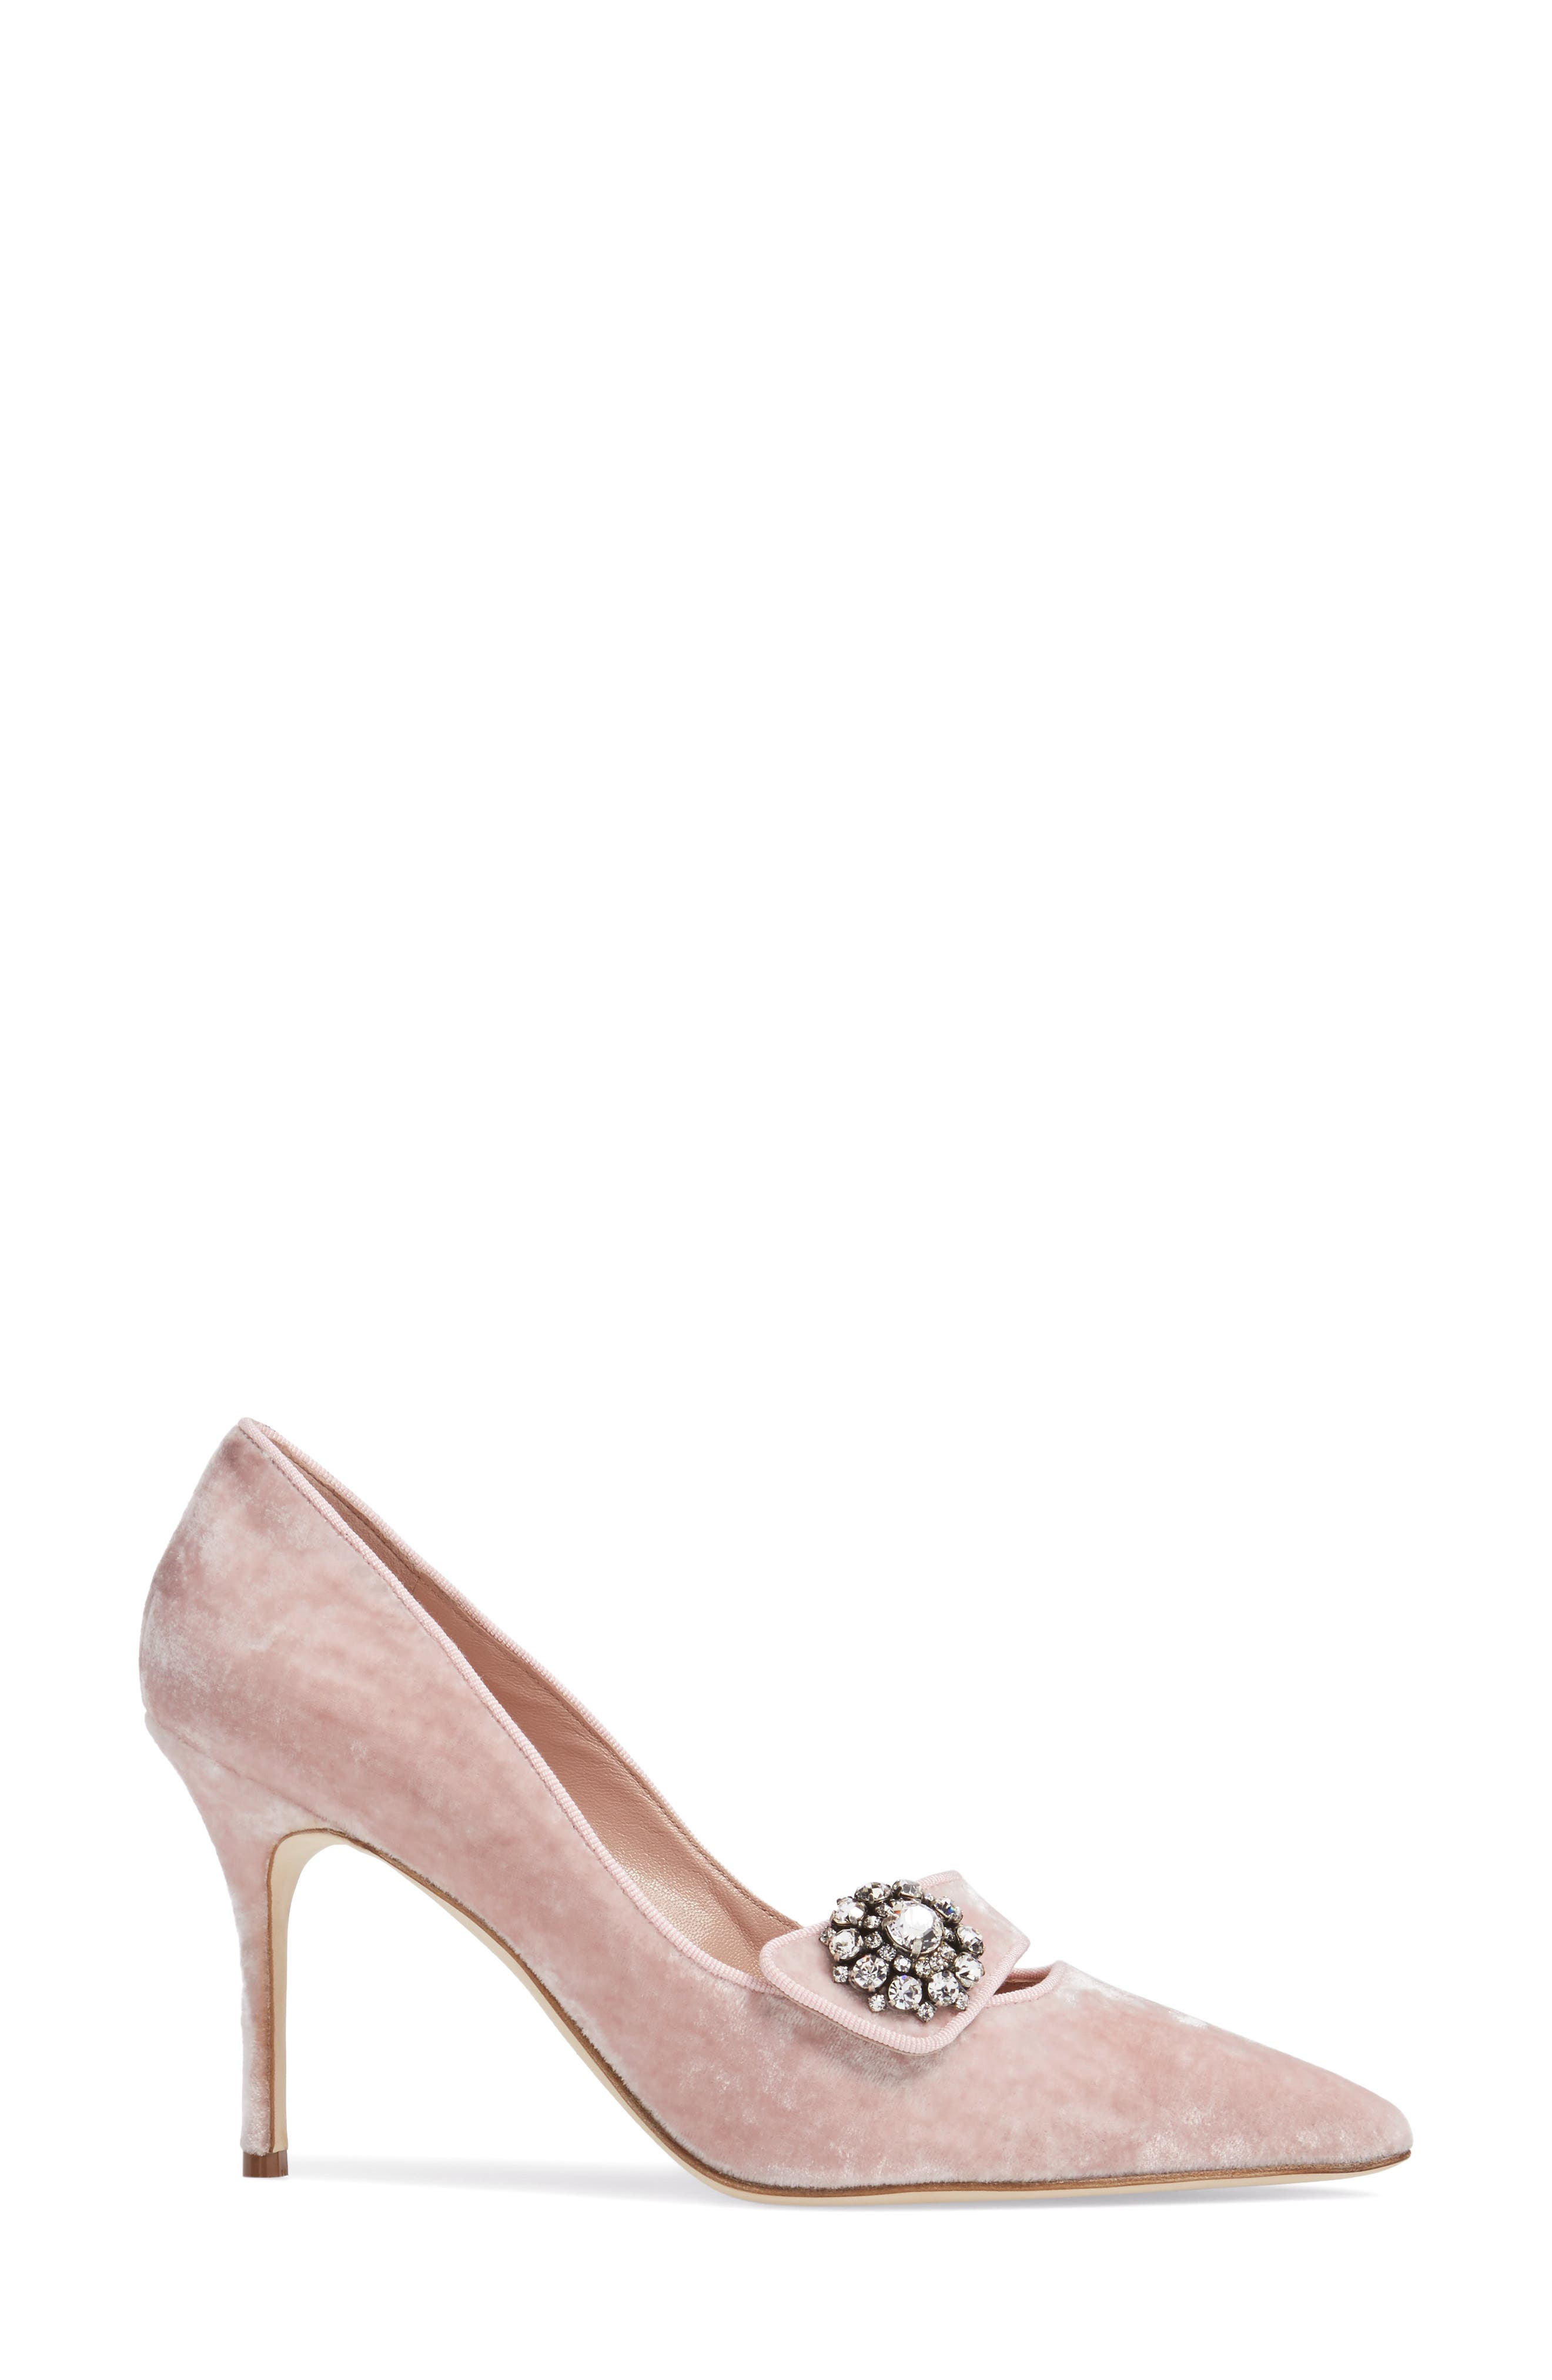 Decebalo Pump,                             Alternate thumbnail 3, color,                             Blush Velvet